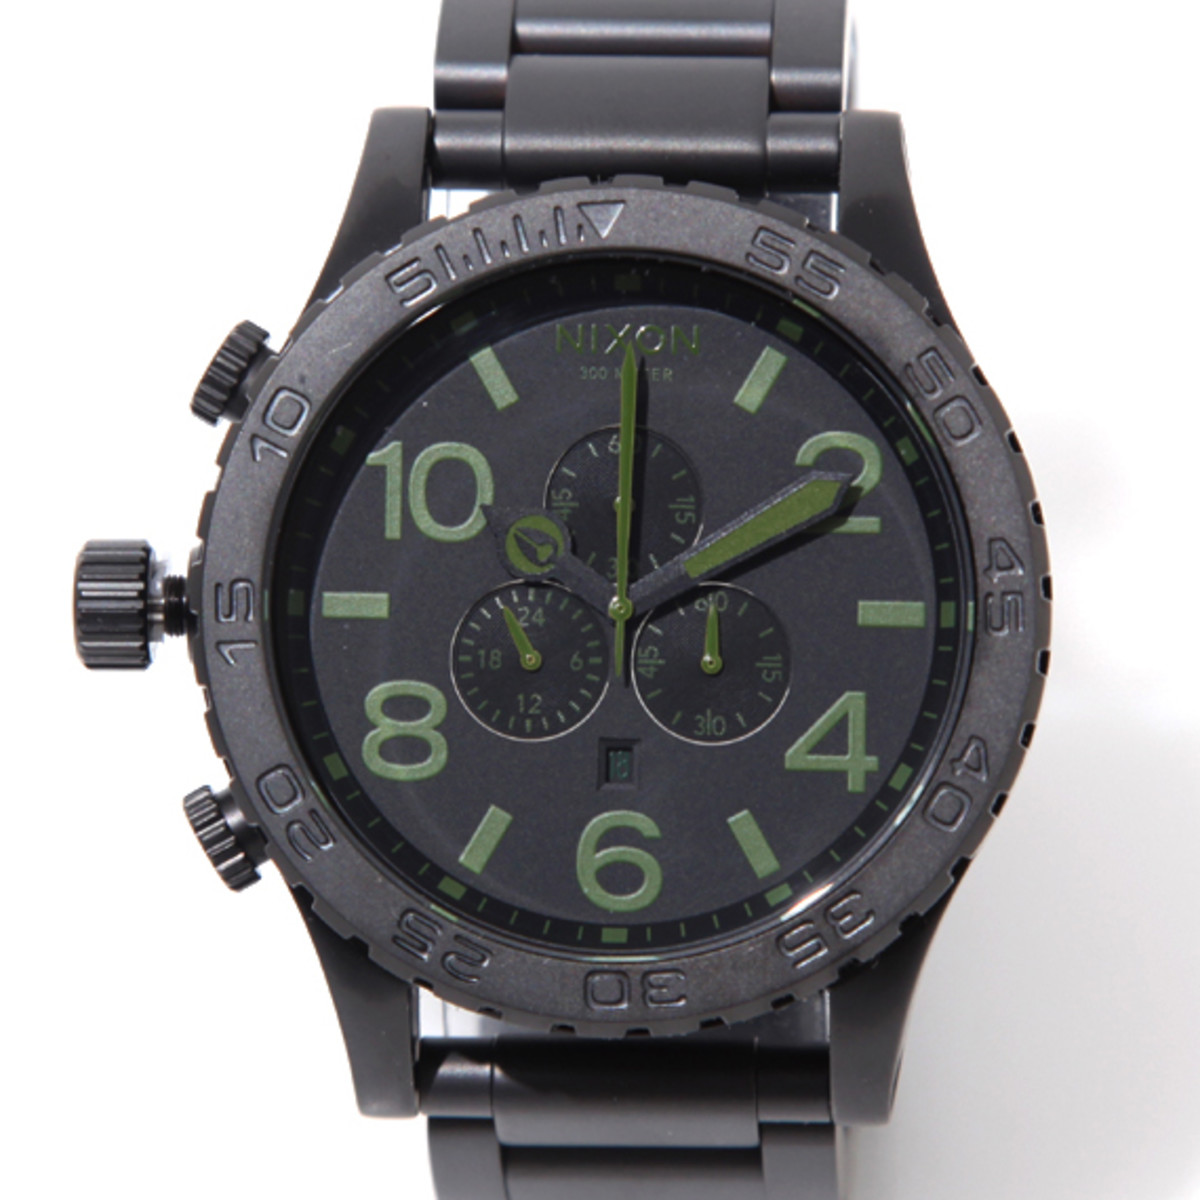 51-30-chrono-black-green-02